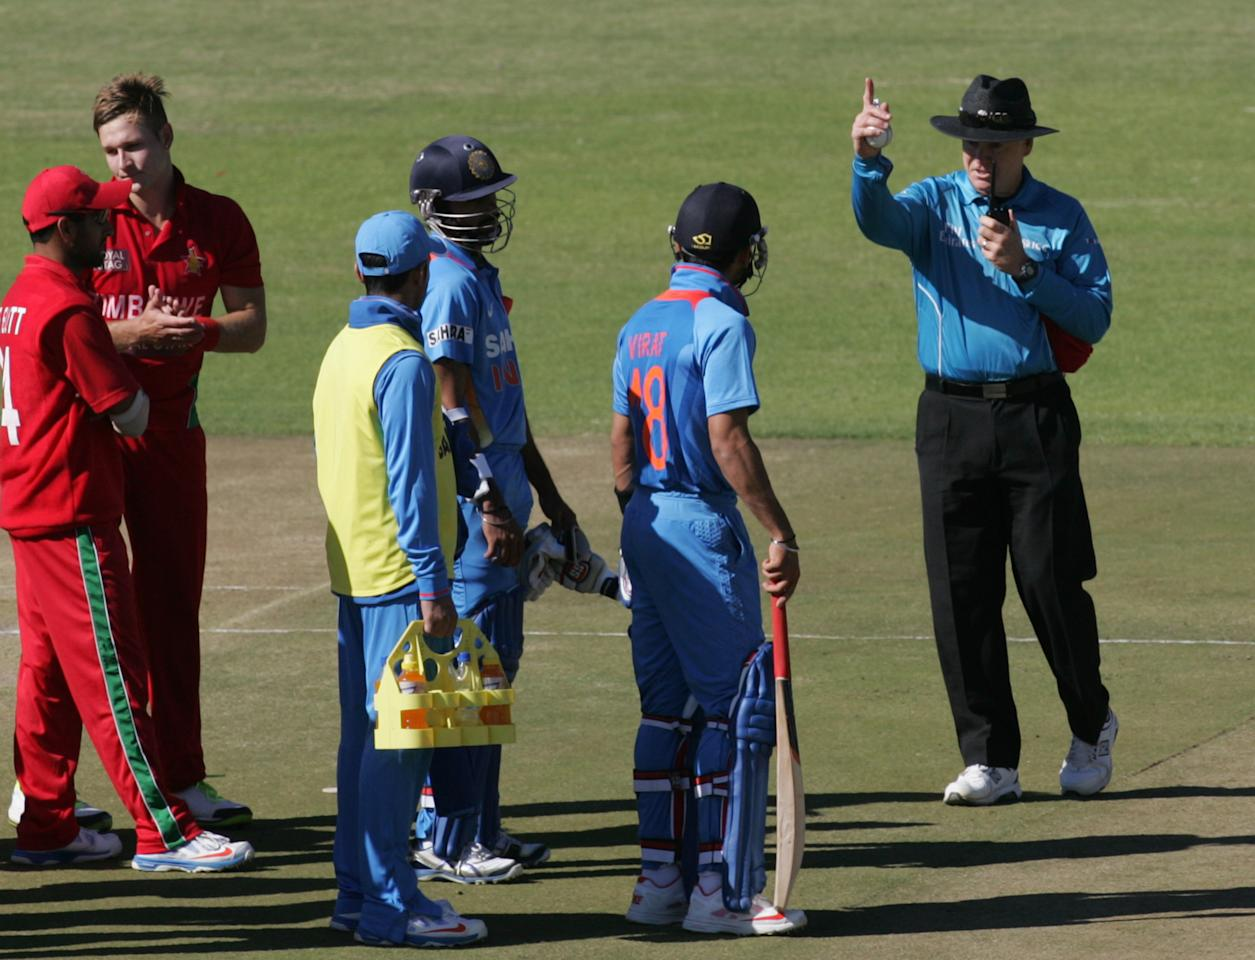 India captain Virat Kohli is given out by umpire Bruce Oxenford after a review during the 2nd match of the 5 match cricket ODI series between hosts Zimbabwe and India at Harare Sports Club on July 26 2013. AFP PHOTO /Jekesai Njikizana.        (Photo credit should read JEKESAI NJIKIZANA/AFP/Getty Images)